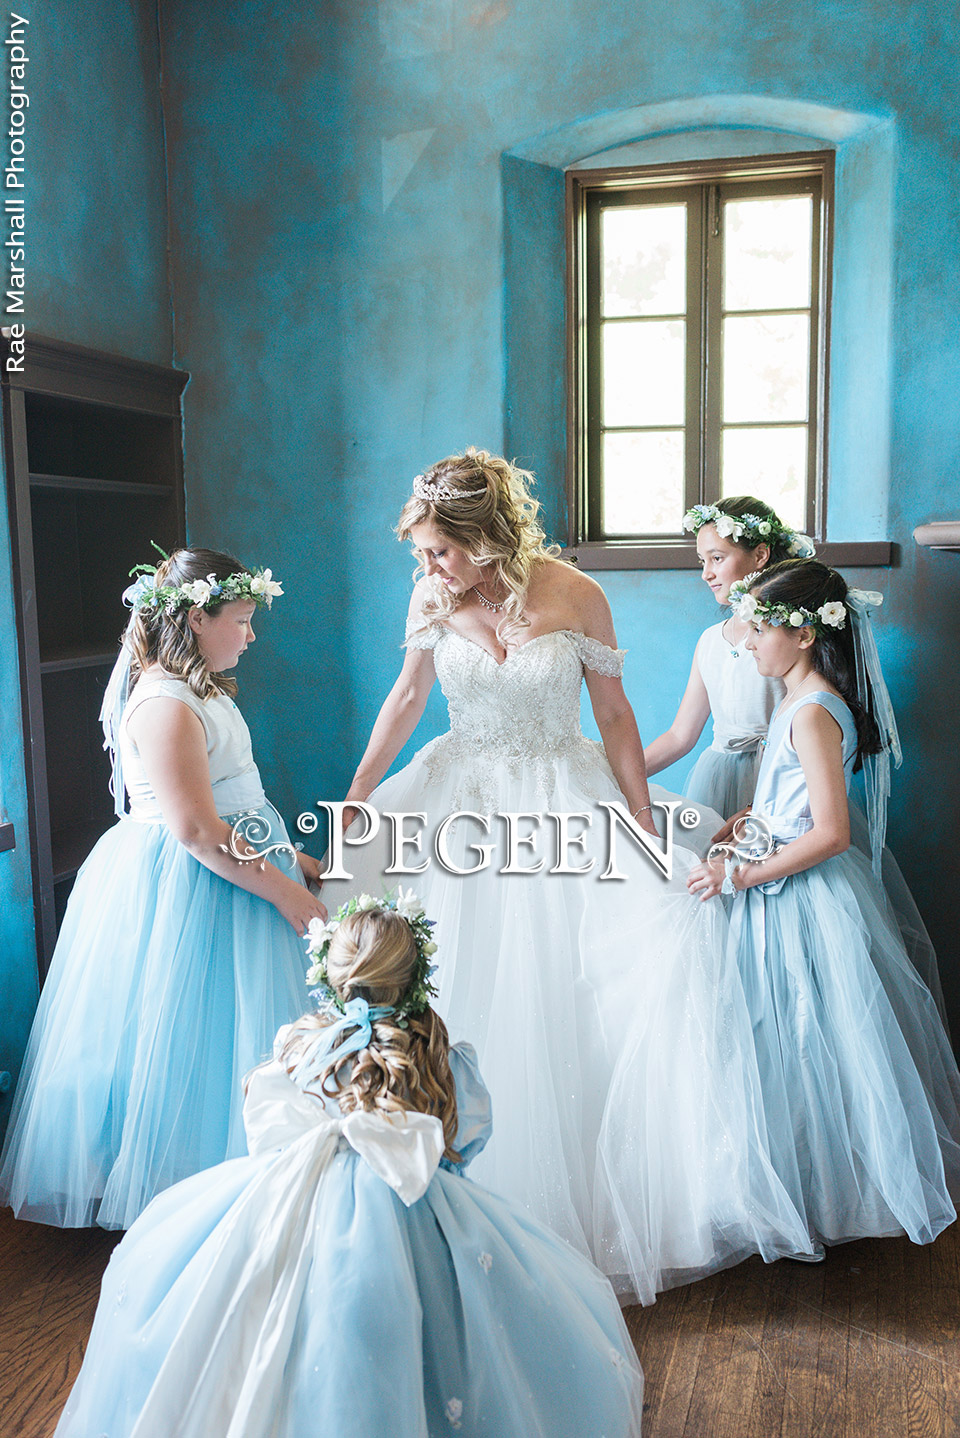 Blue Flower Girl Dress of the Year - Jr Bridesmaids Dresses